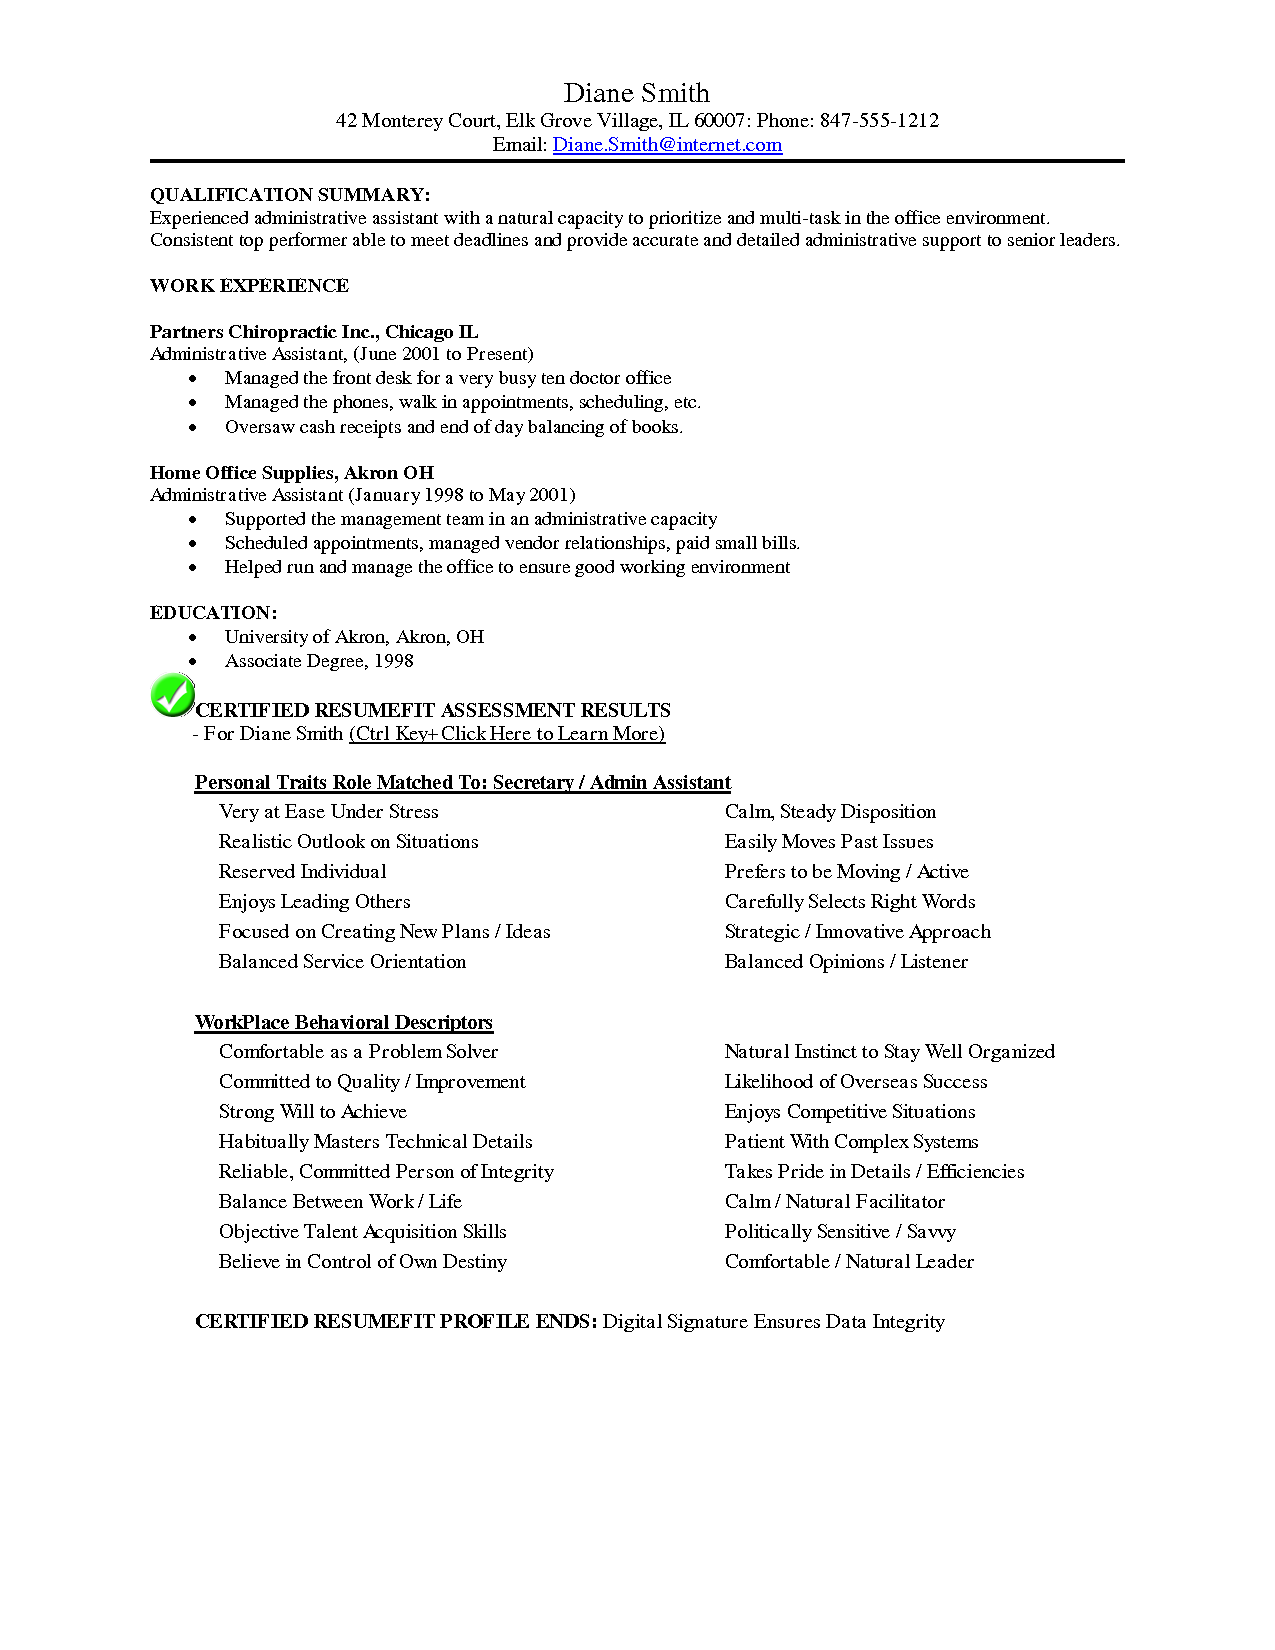 Example Of A Resume For A Job Chiropractic Resume Example  Resumes  Pinterest  Resume